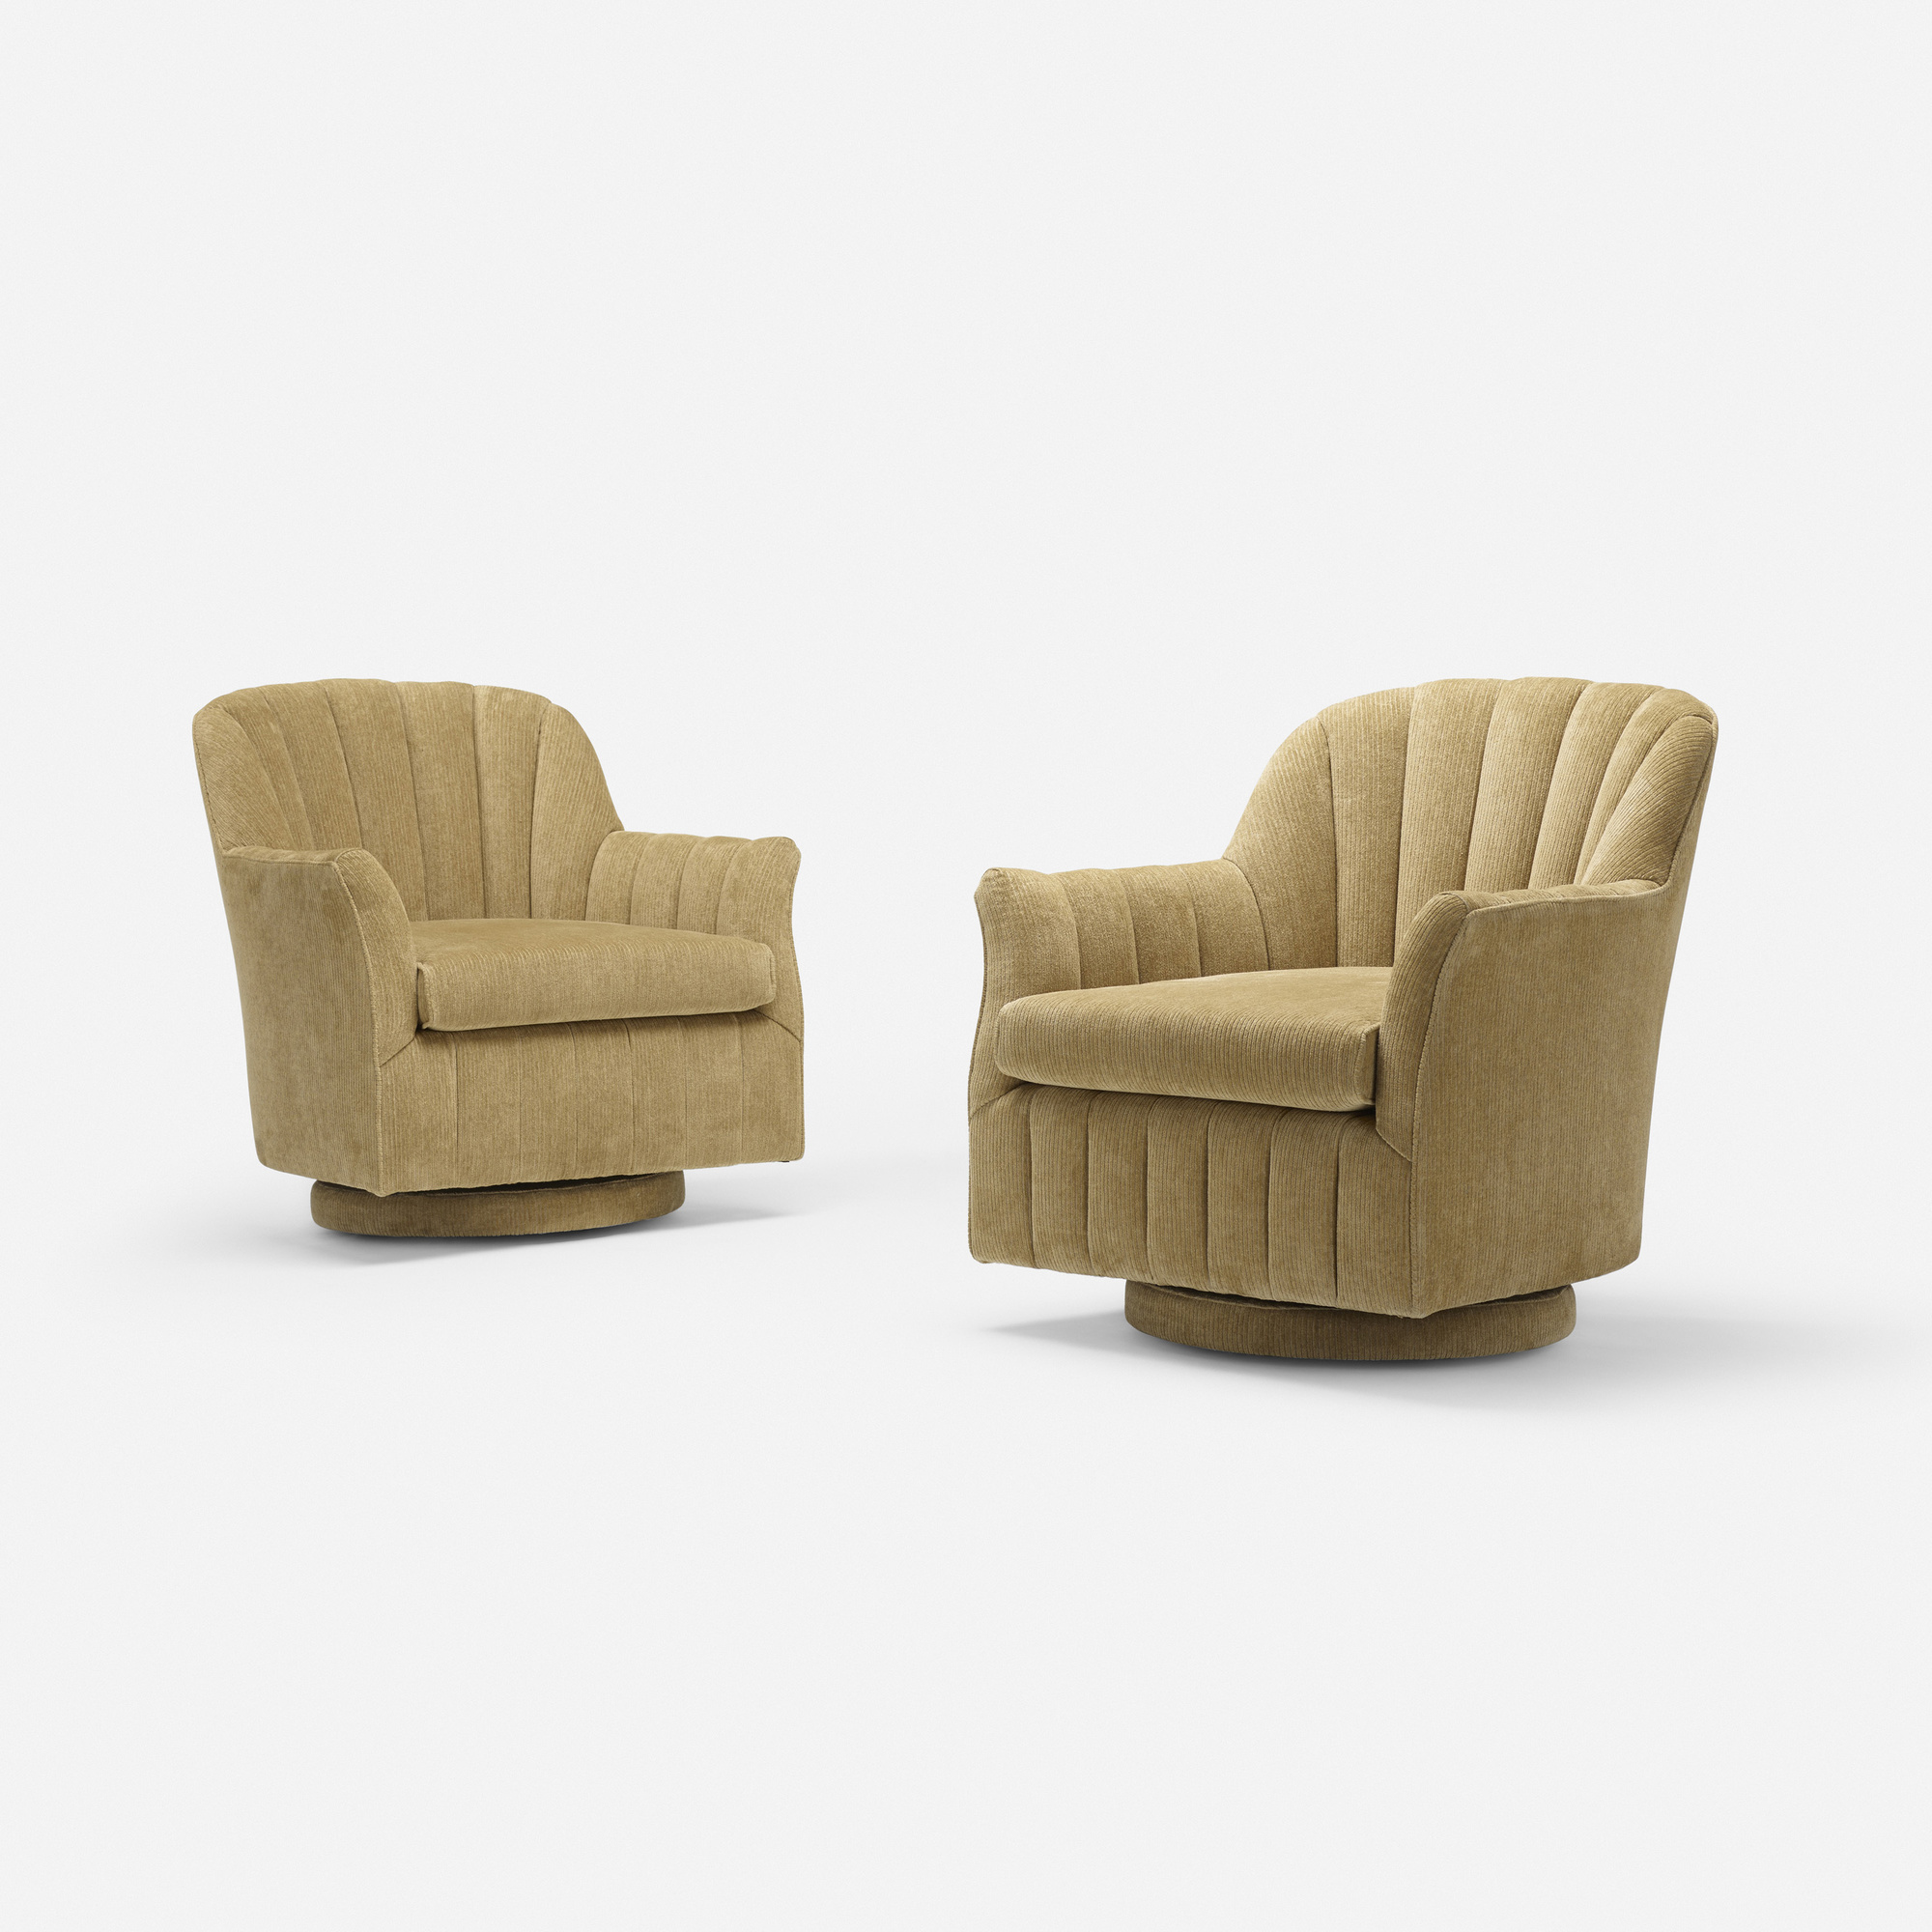 155: Milo Baughman, attribution / lounge chairs, pair (1 of 3)